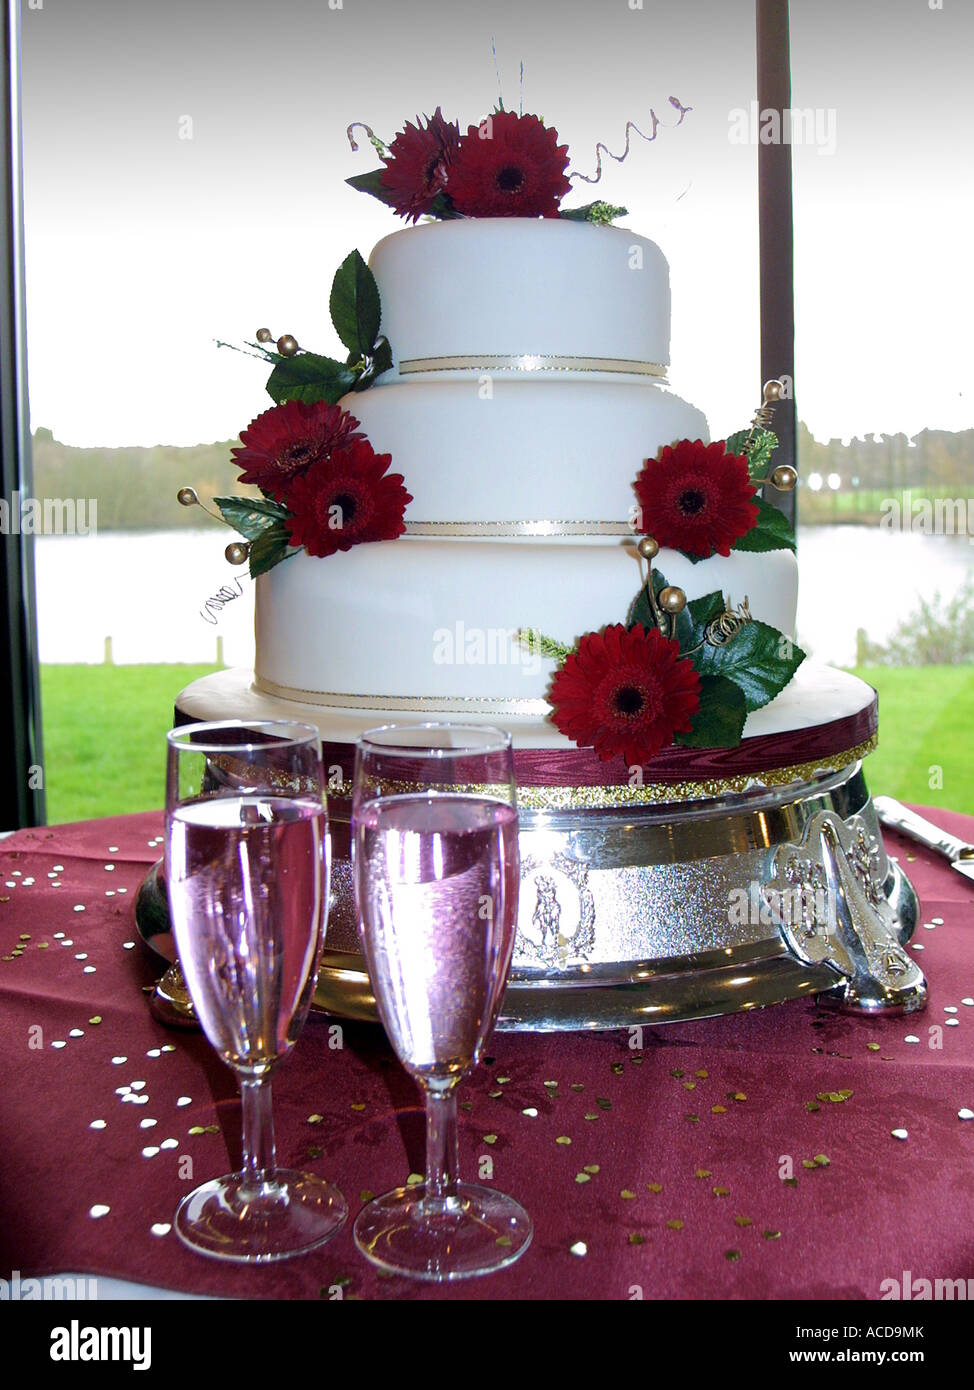 a 3 tier white wedding cake with red roses as decorations and 2 full     a 3 tier white wedding cake with red roses as decorations and 2 full  champagne glasses in the foreground